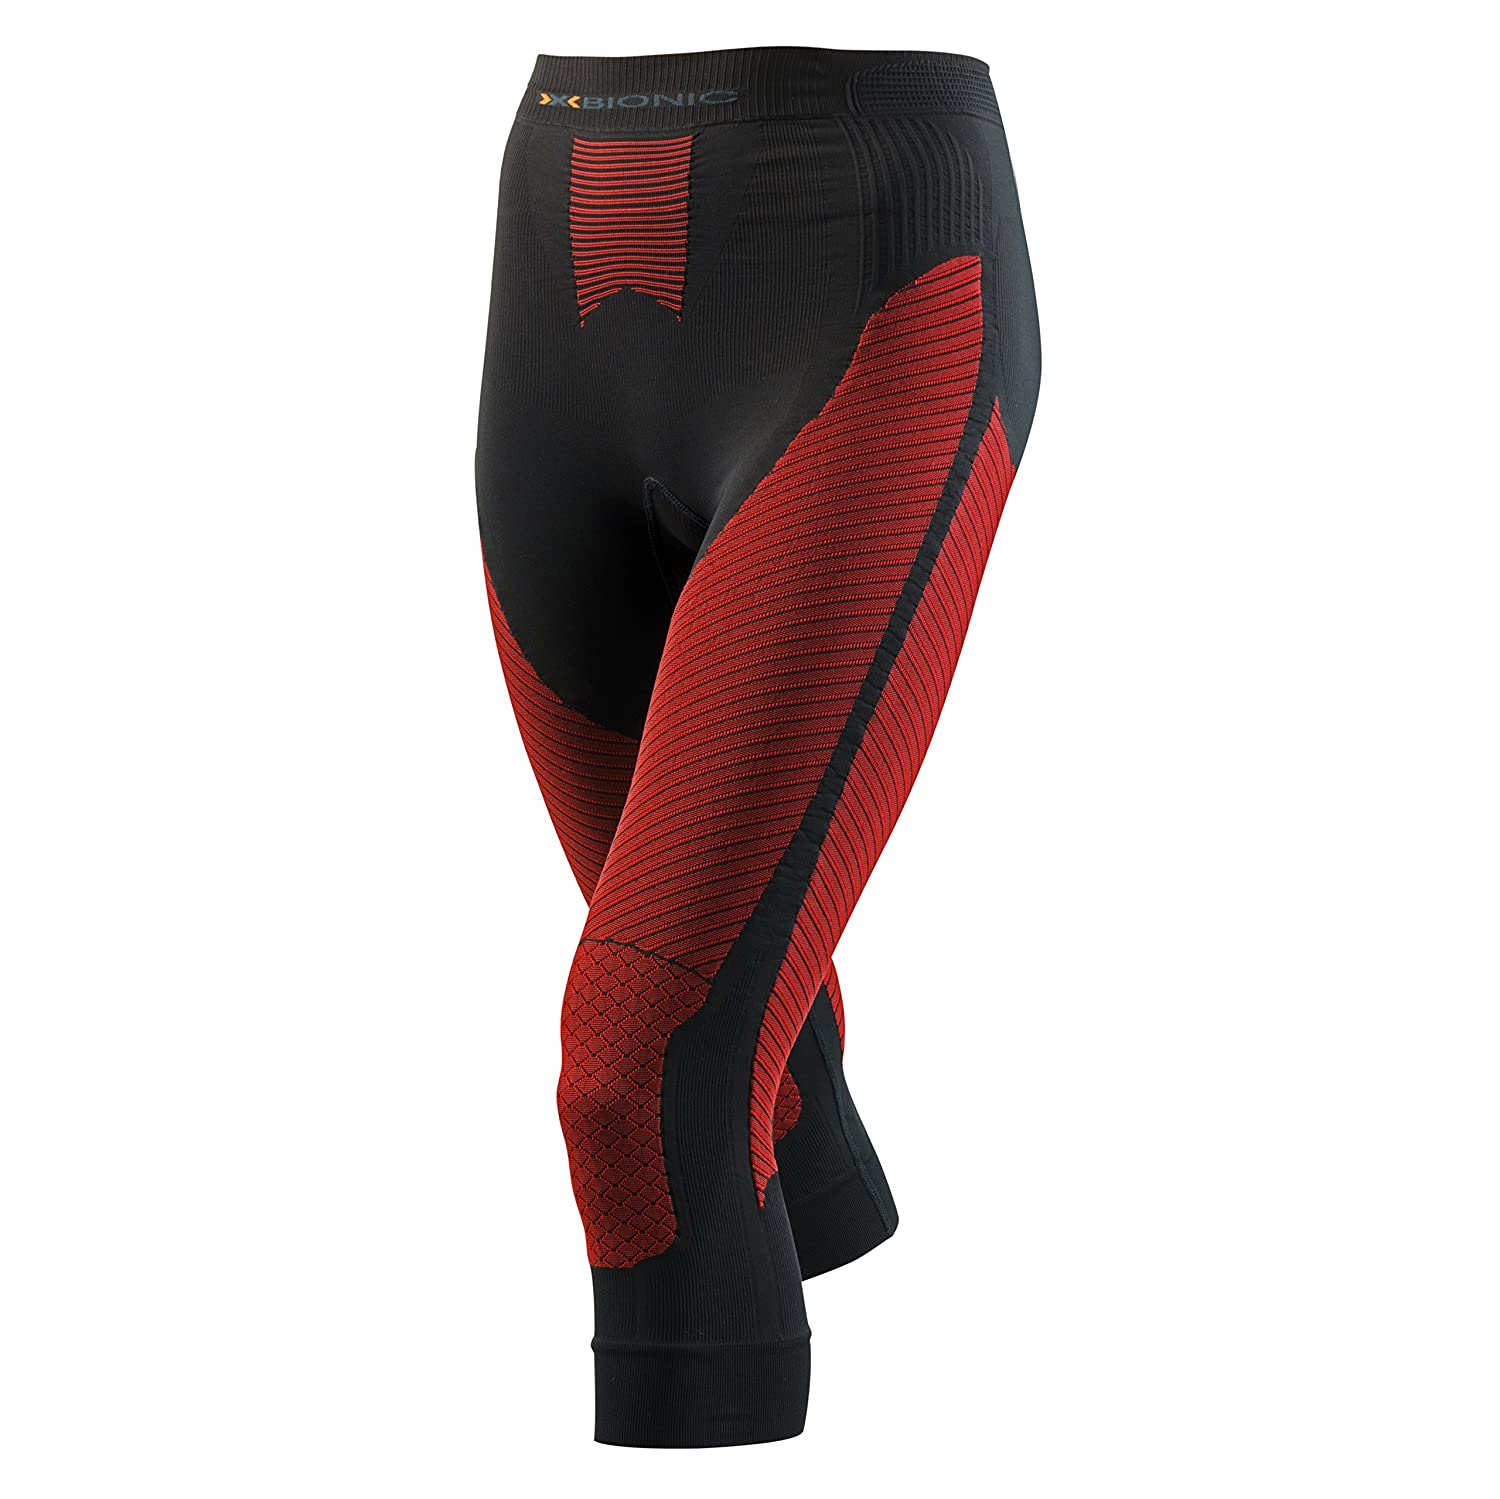 X-Bionic Ski Touring Pants medium Women xI20192, stone/red